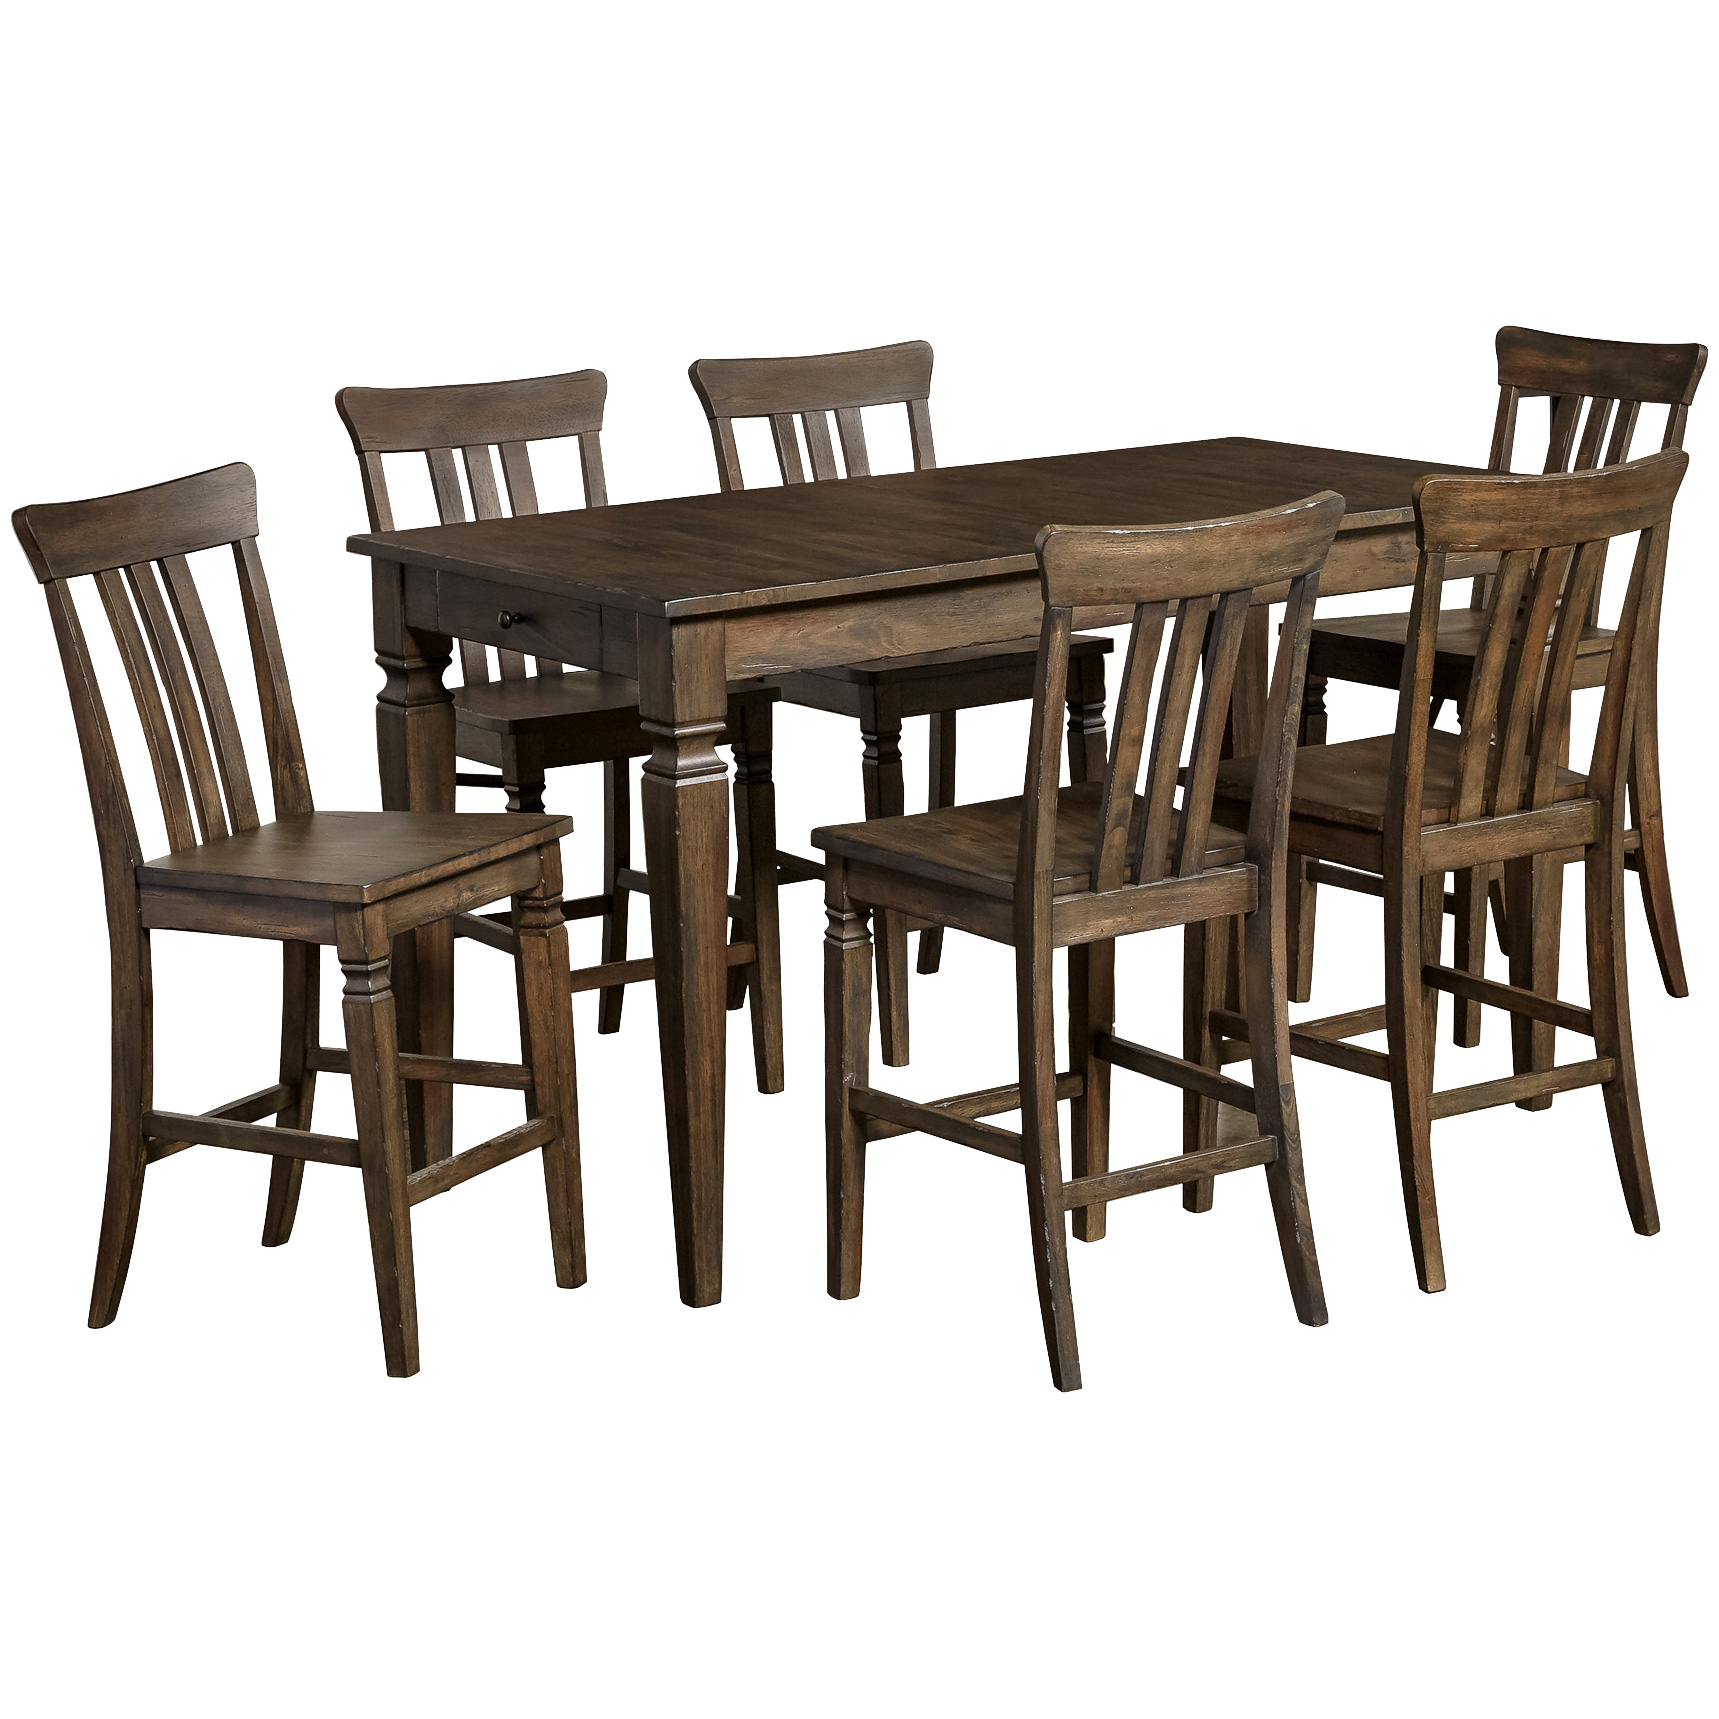 A America | Kingston Dusty Black 5 Piece Counter Dining Set